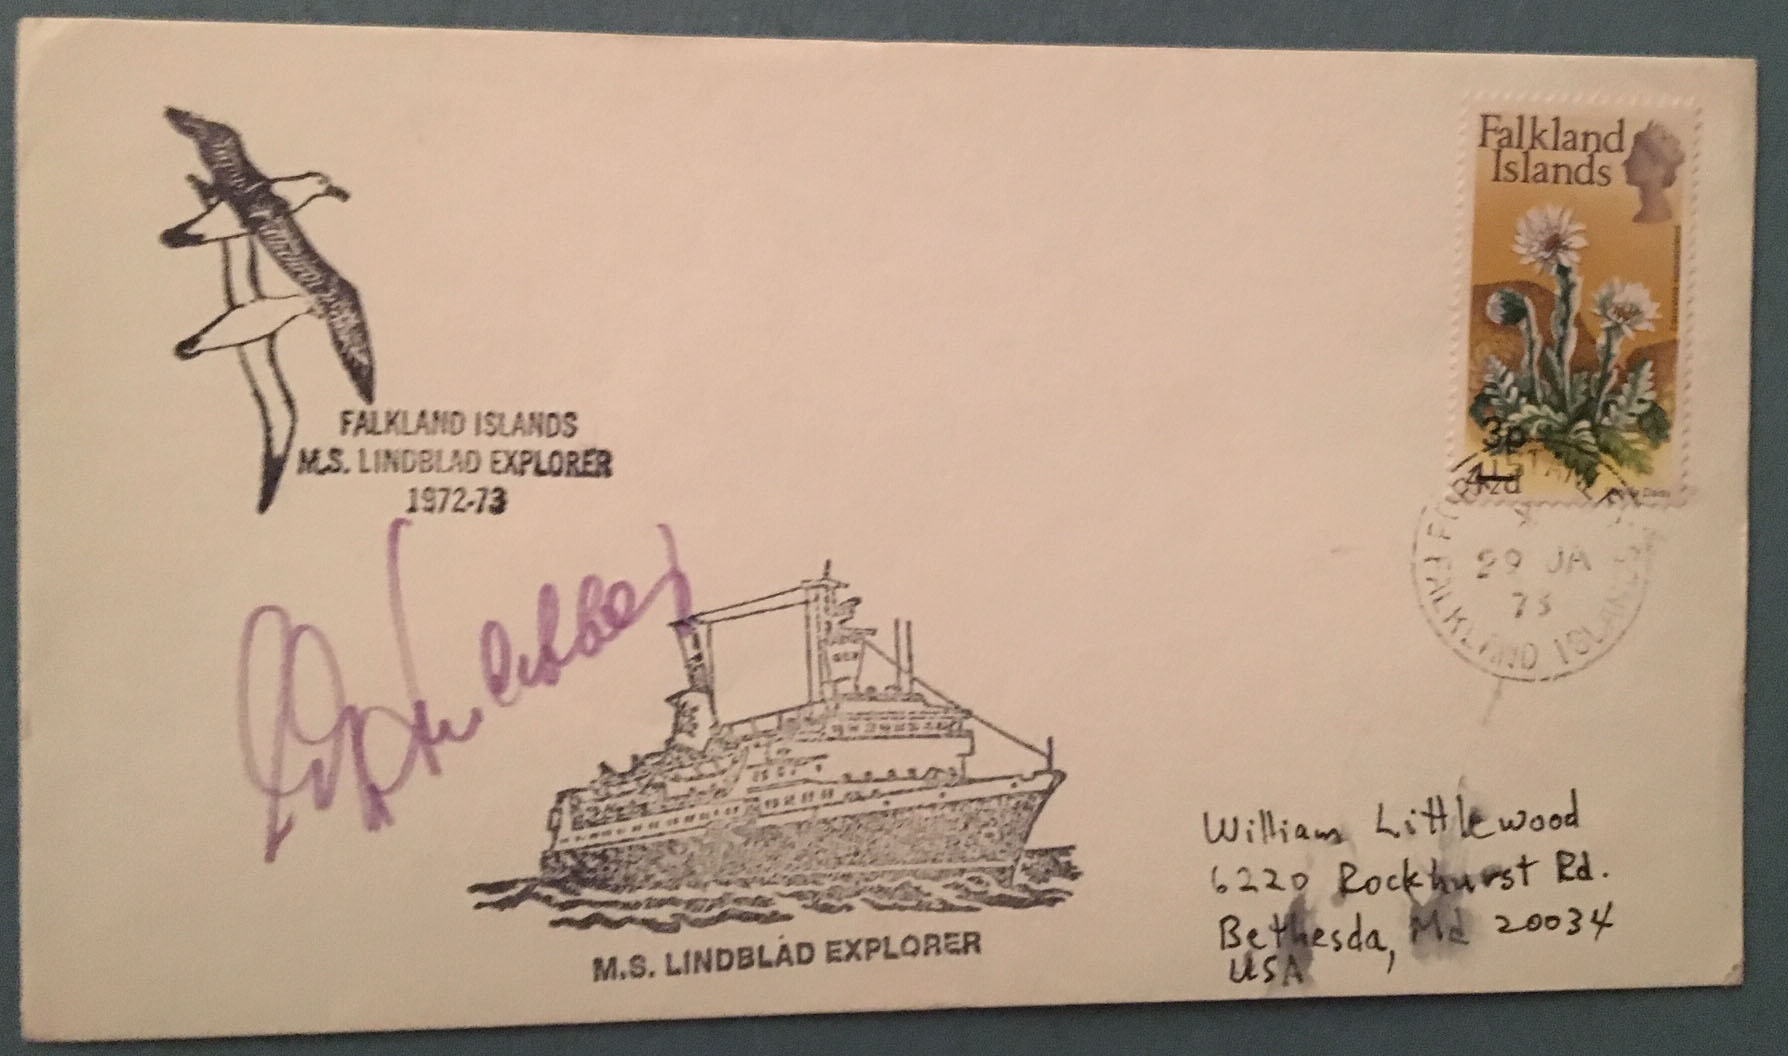 Falkland Islands 1973 LINDBLAD EXPLORER